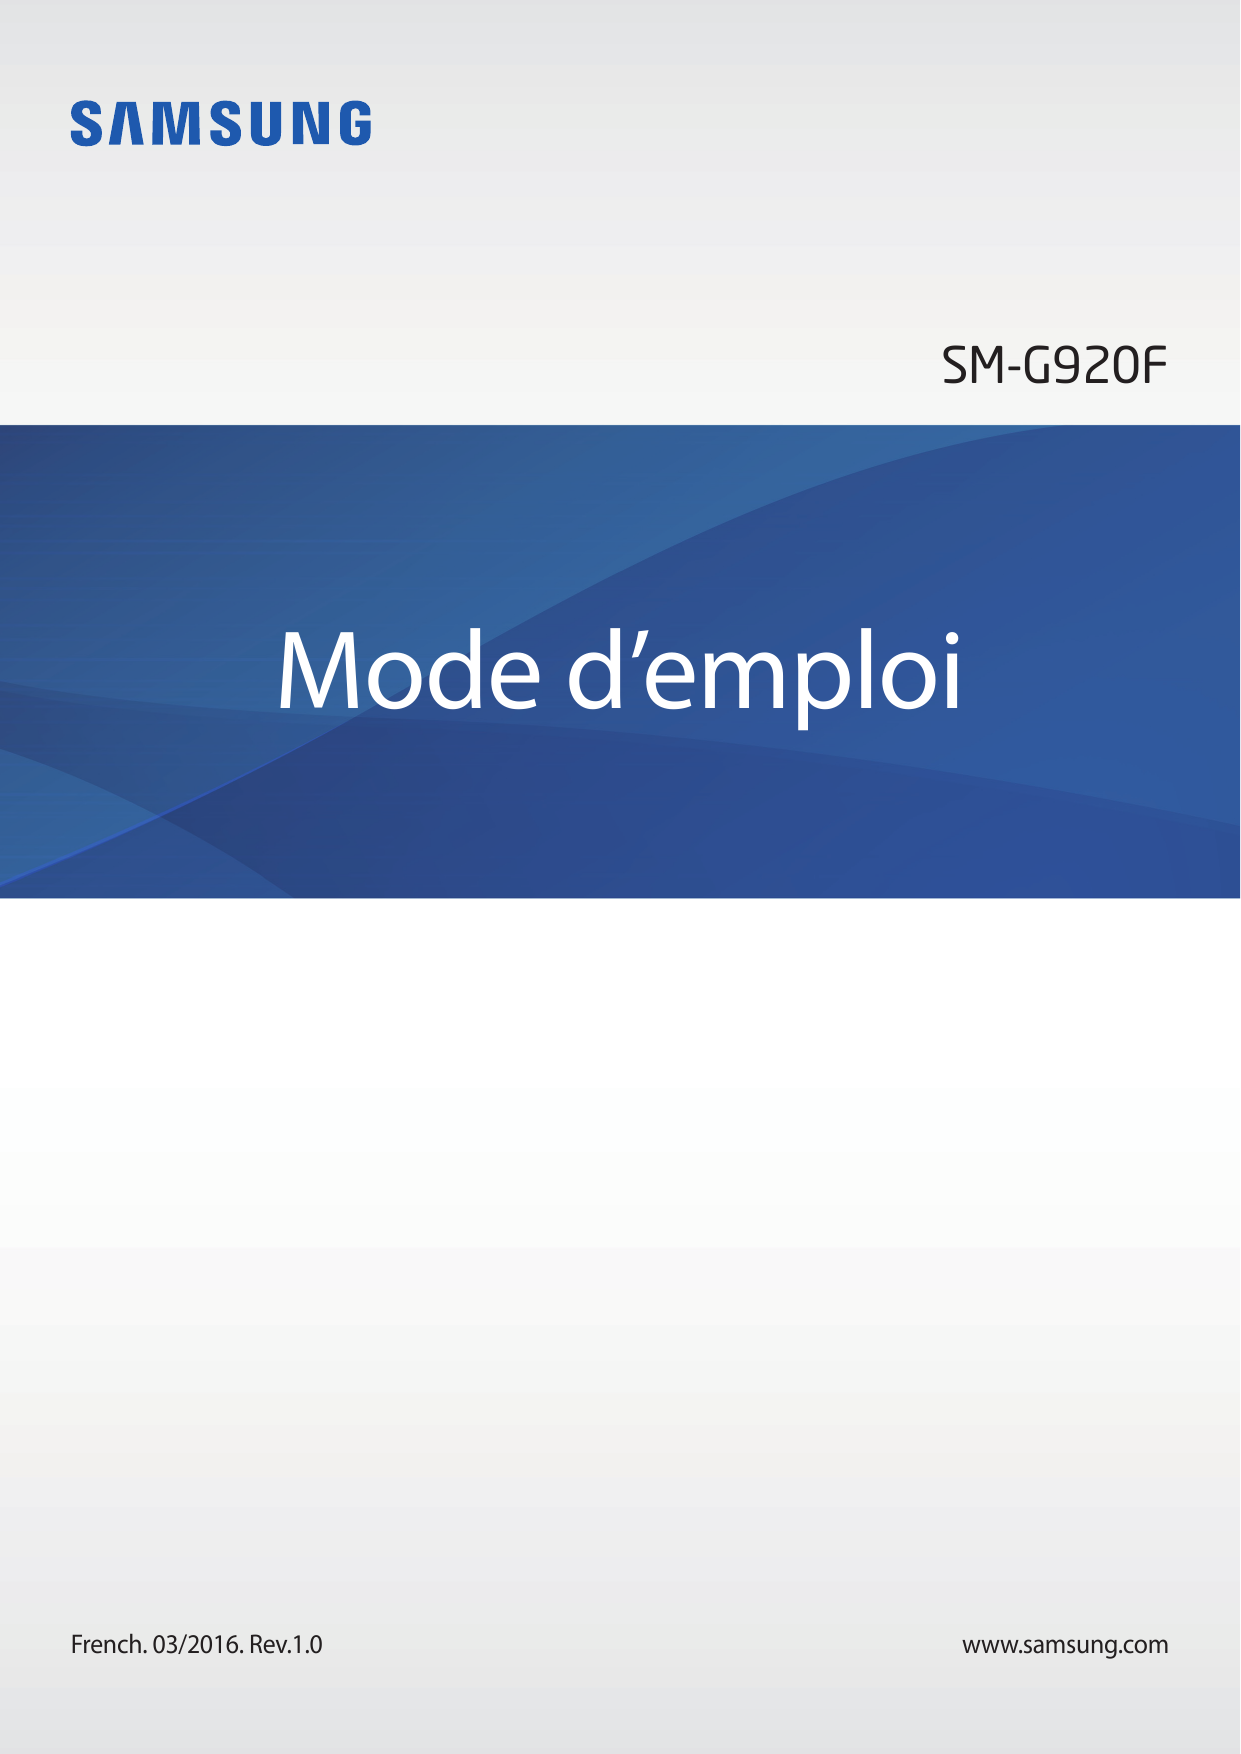 SM-G920FMode d'emploiFrench. 03/2016. Rev.1.0www.samsung.com